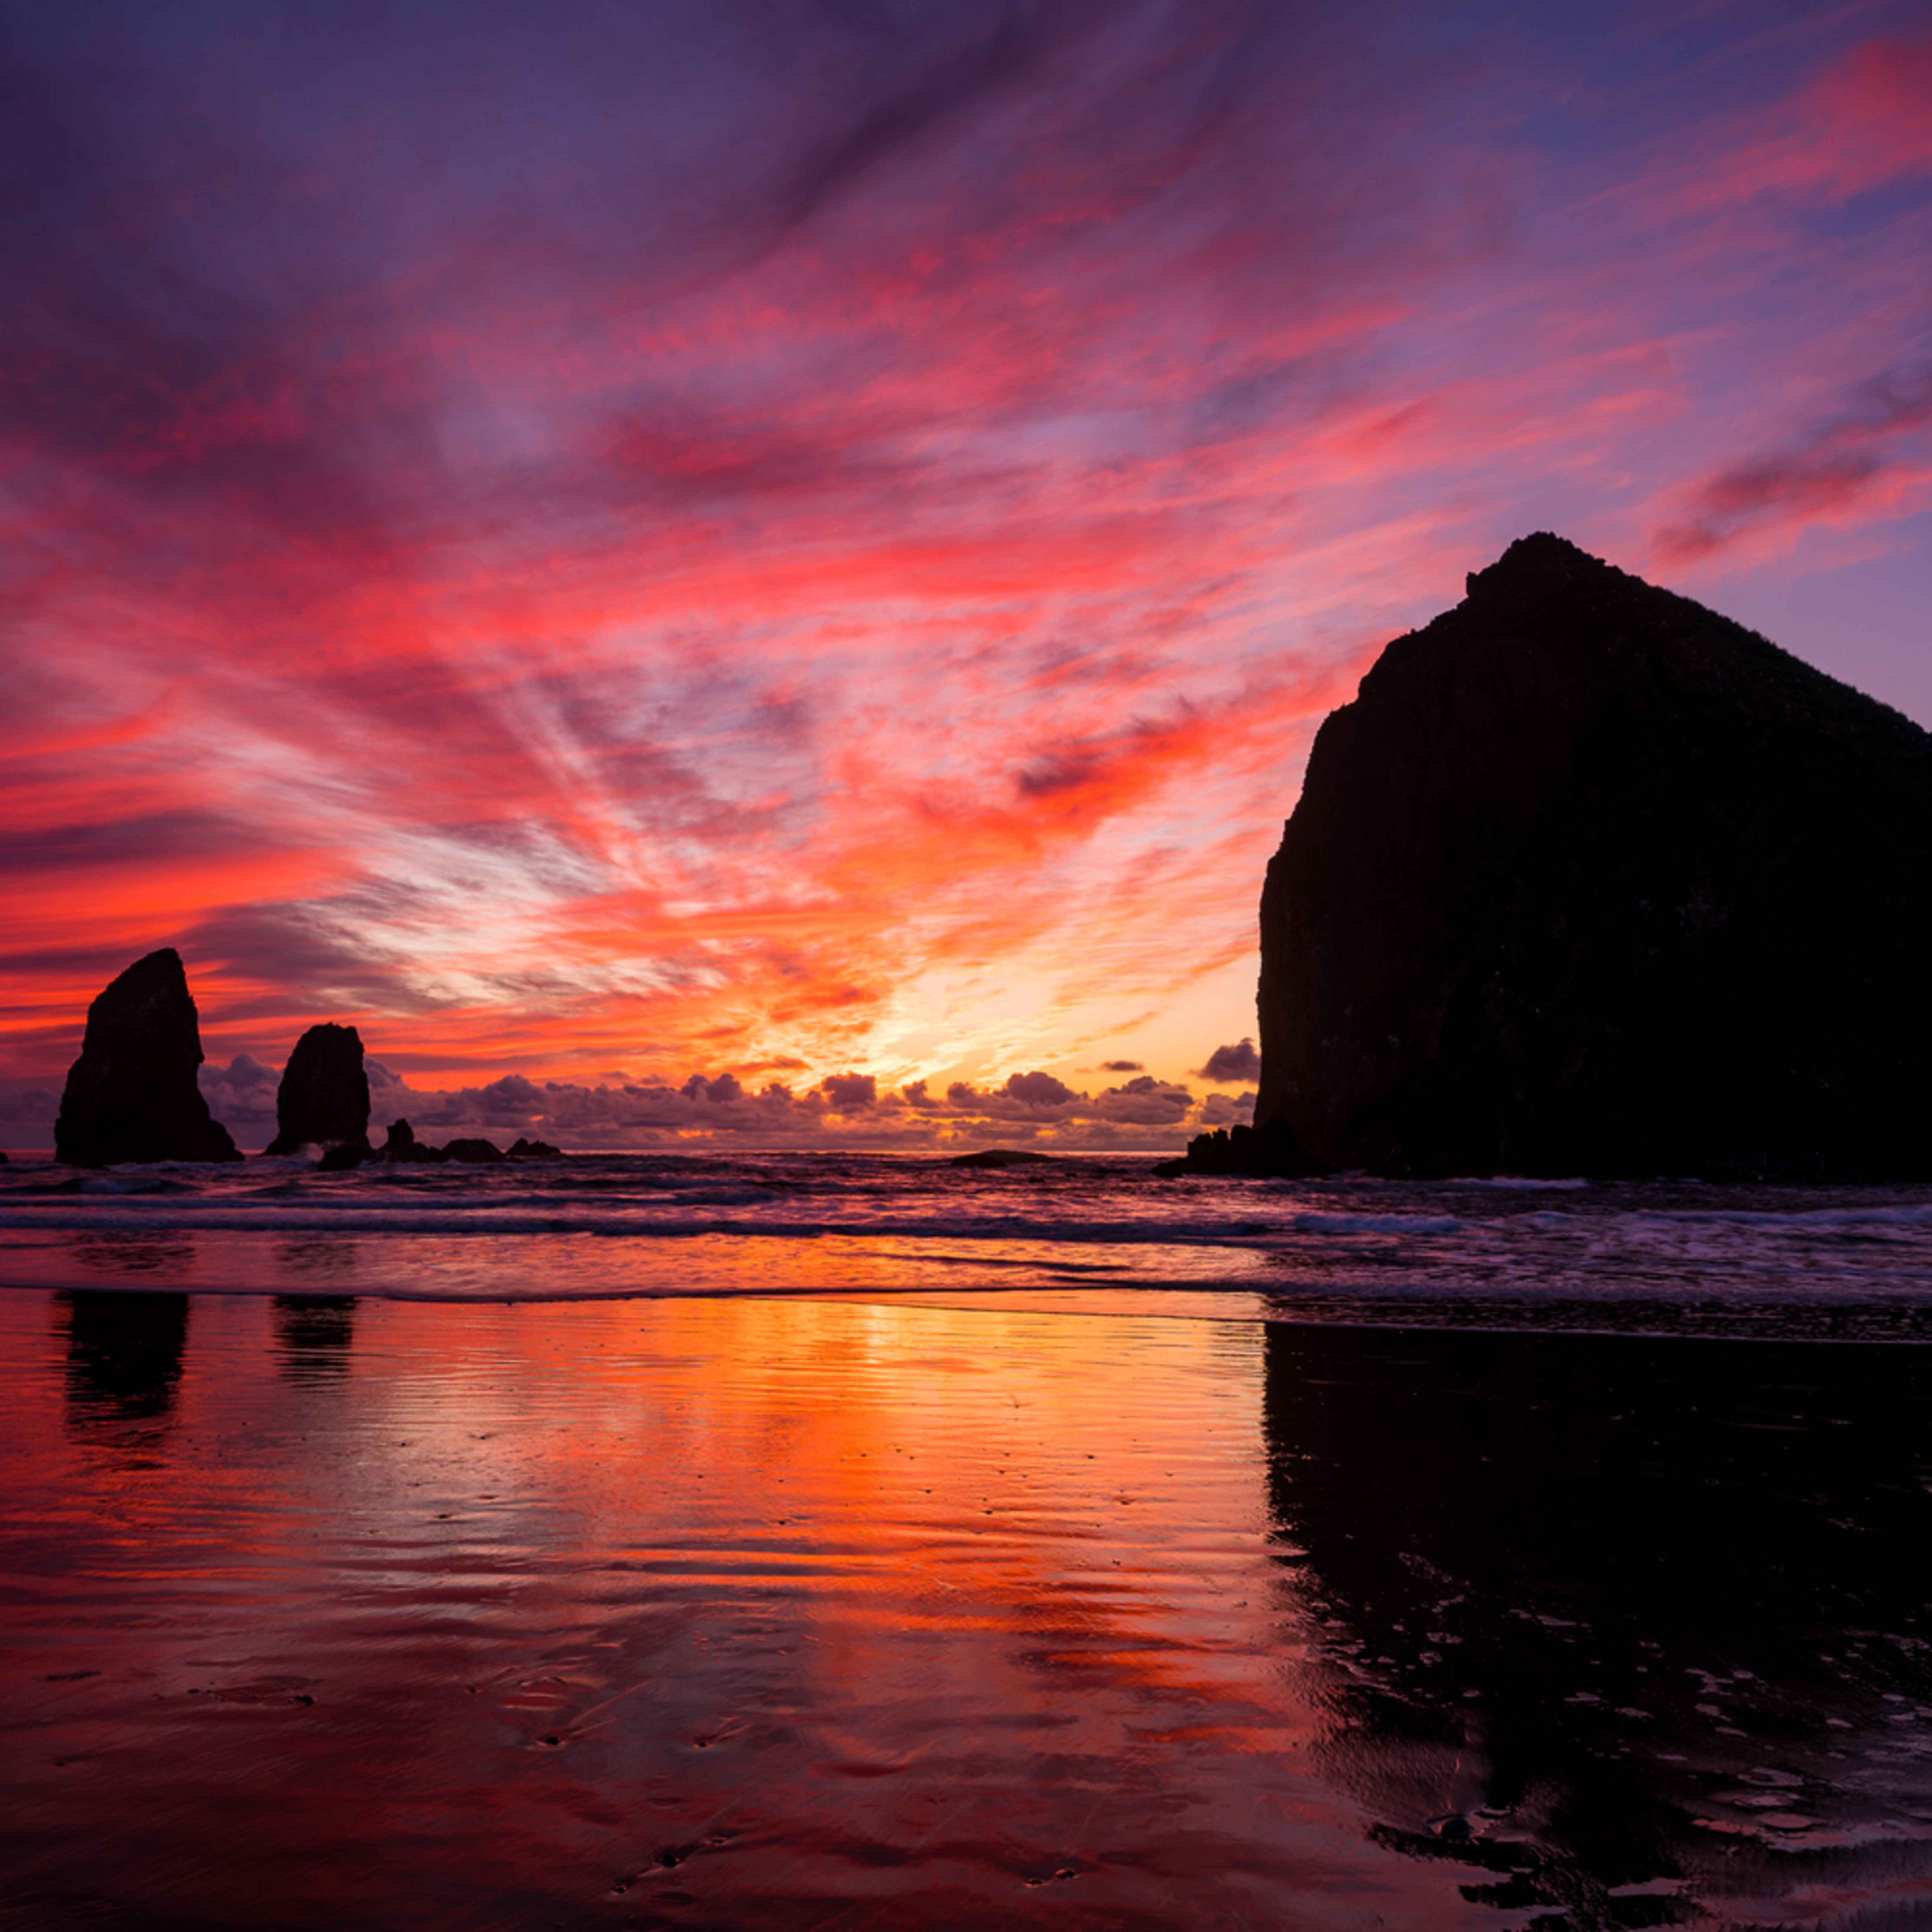 Sunset reflections cannon beach oregon 022019 ym4cfe